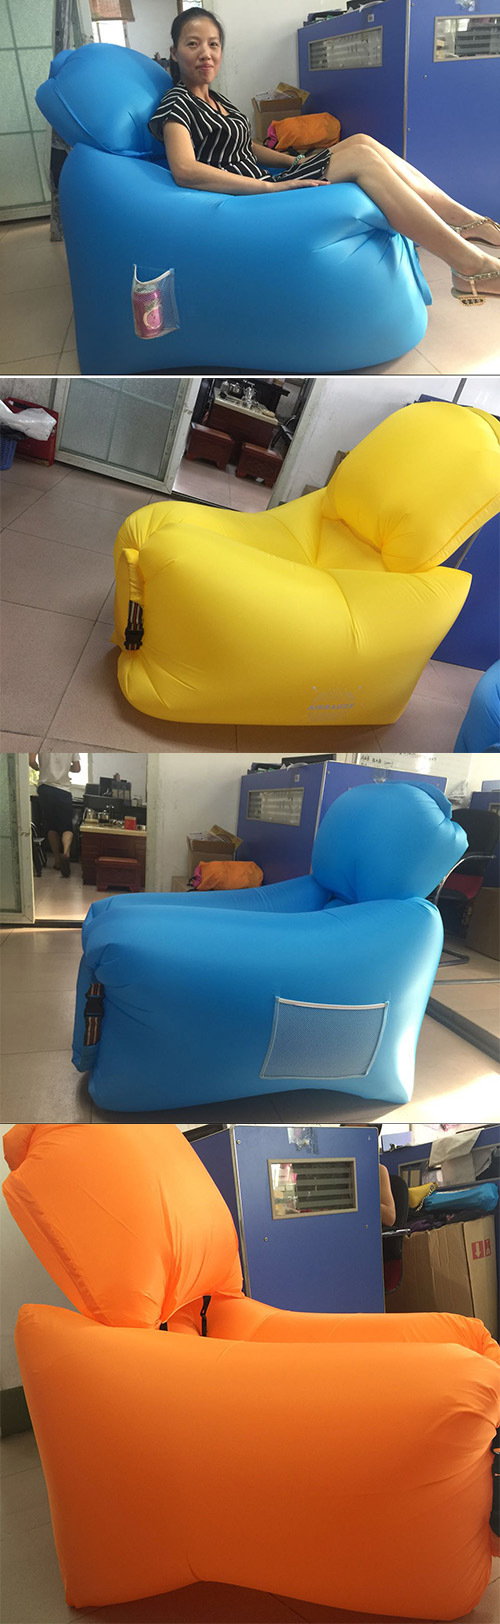 Lazy Bag Lamzac Inflatable Sleeping Bag Lamzac Laybag Lazy Bag Inflate Lounge Air Inflatable Sofa Lamzac Lazy Bag